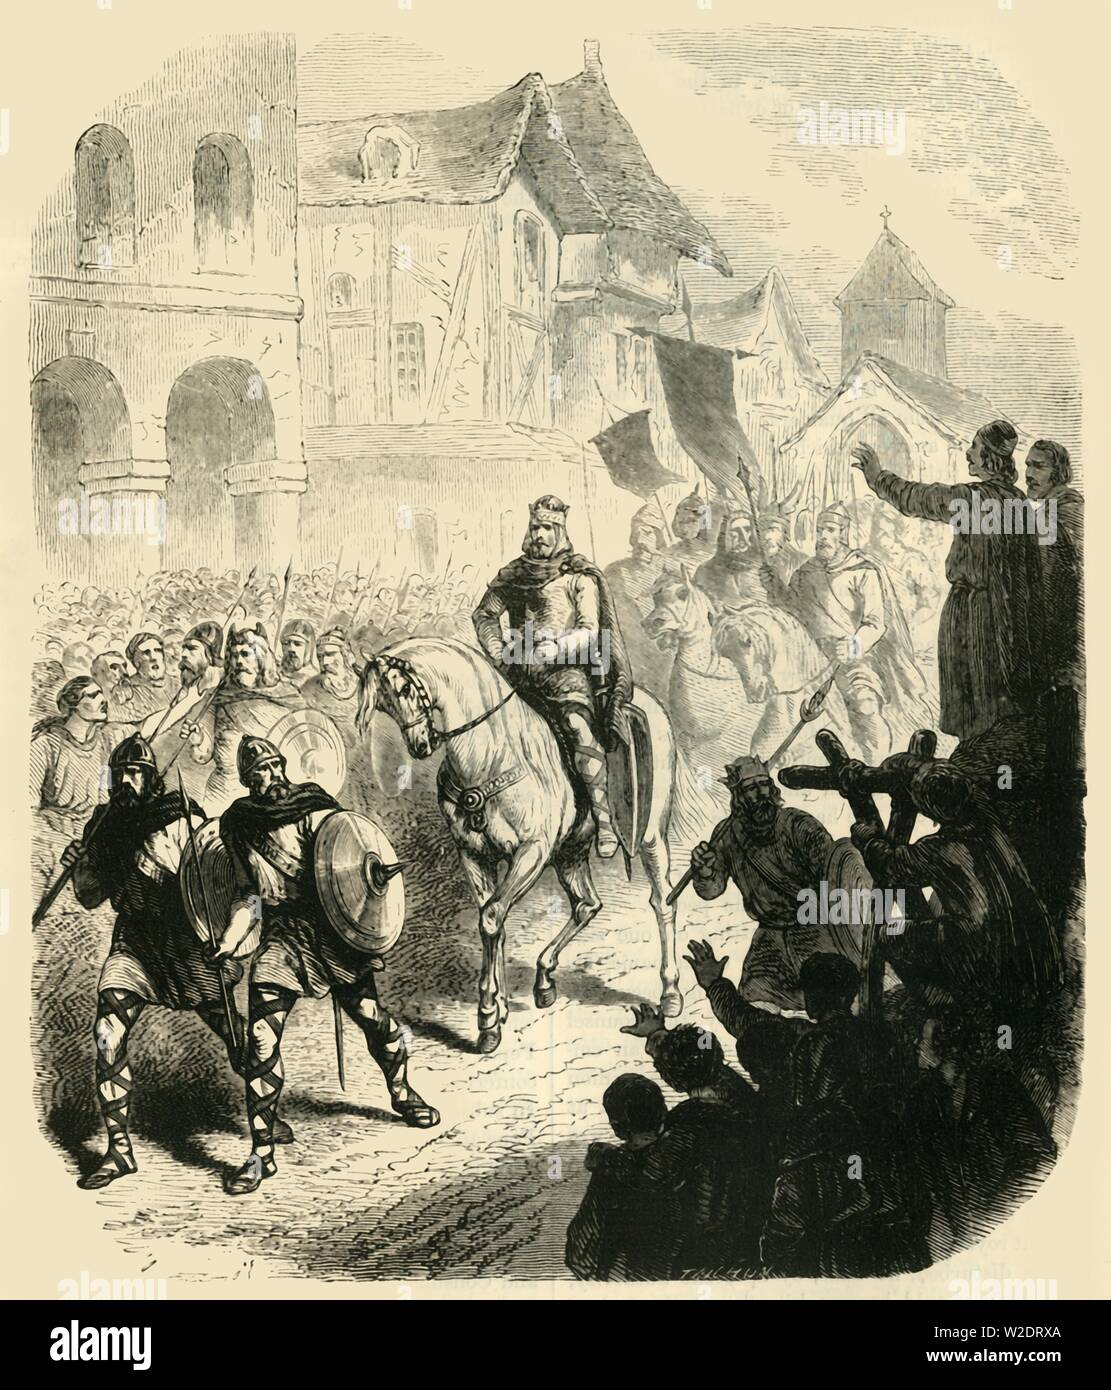 """'Entry of Charles Martel into Paris, After Defeating the Saracens',  (732AD), 1890. Charles Martel (c688-741) Frankish statesman and military leader defeated the Saracens at the Battle of Tours or Poitiers in 732. From """"Cassell's Illustrated Universal History, Vol. III - The Middle Ages"""", by Edmund Ollier. [Cassell and Company, Limited, London, Paris and Melbourne, 1890. ] - Stock Image"""